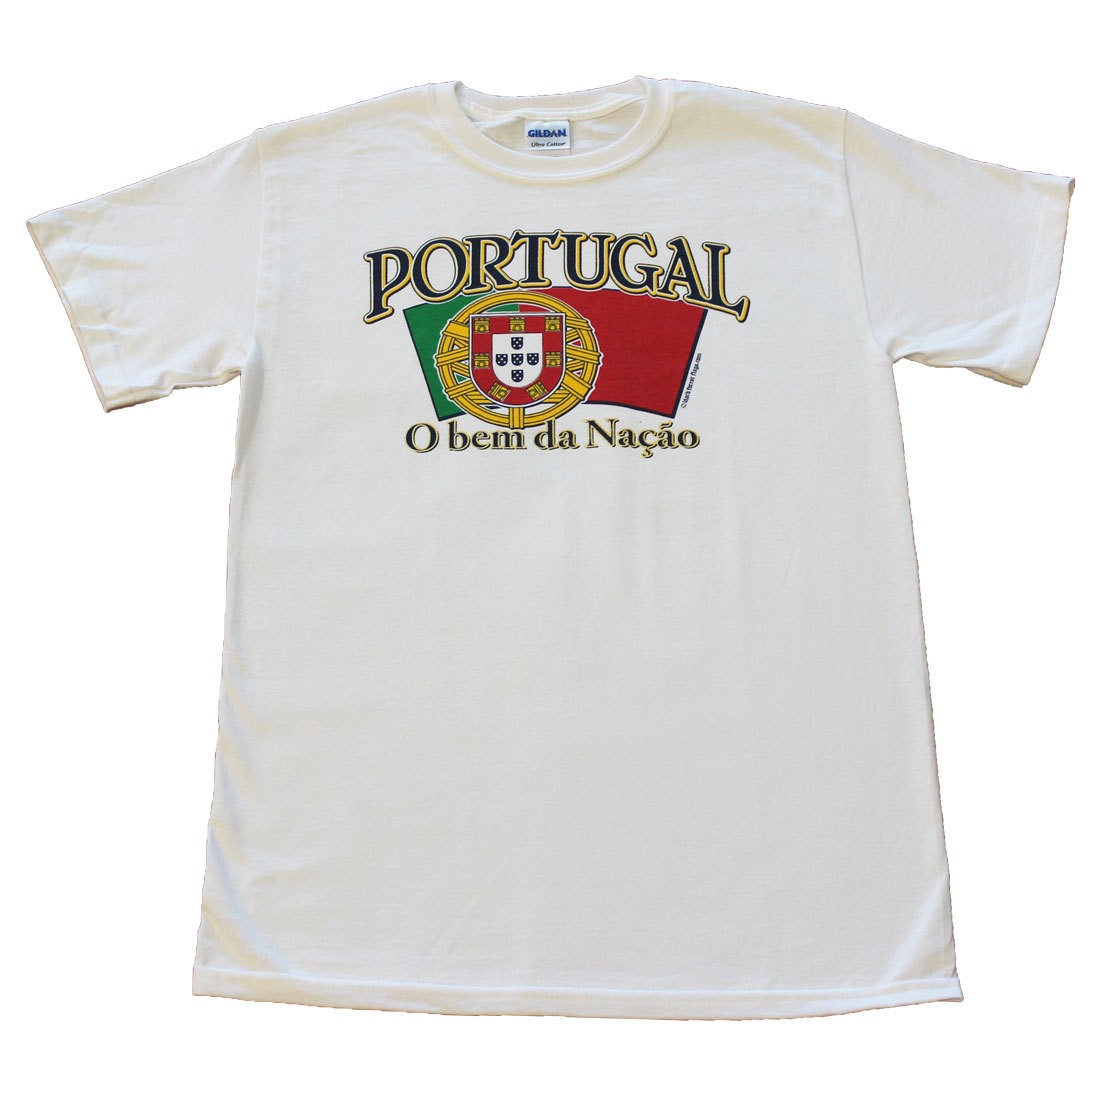 Portugal International T-Shirt (XL)